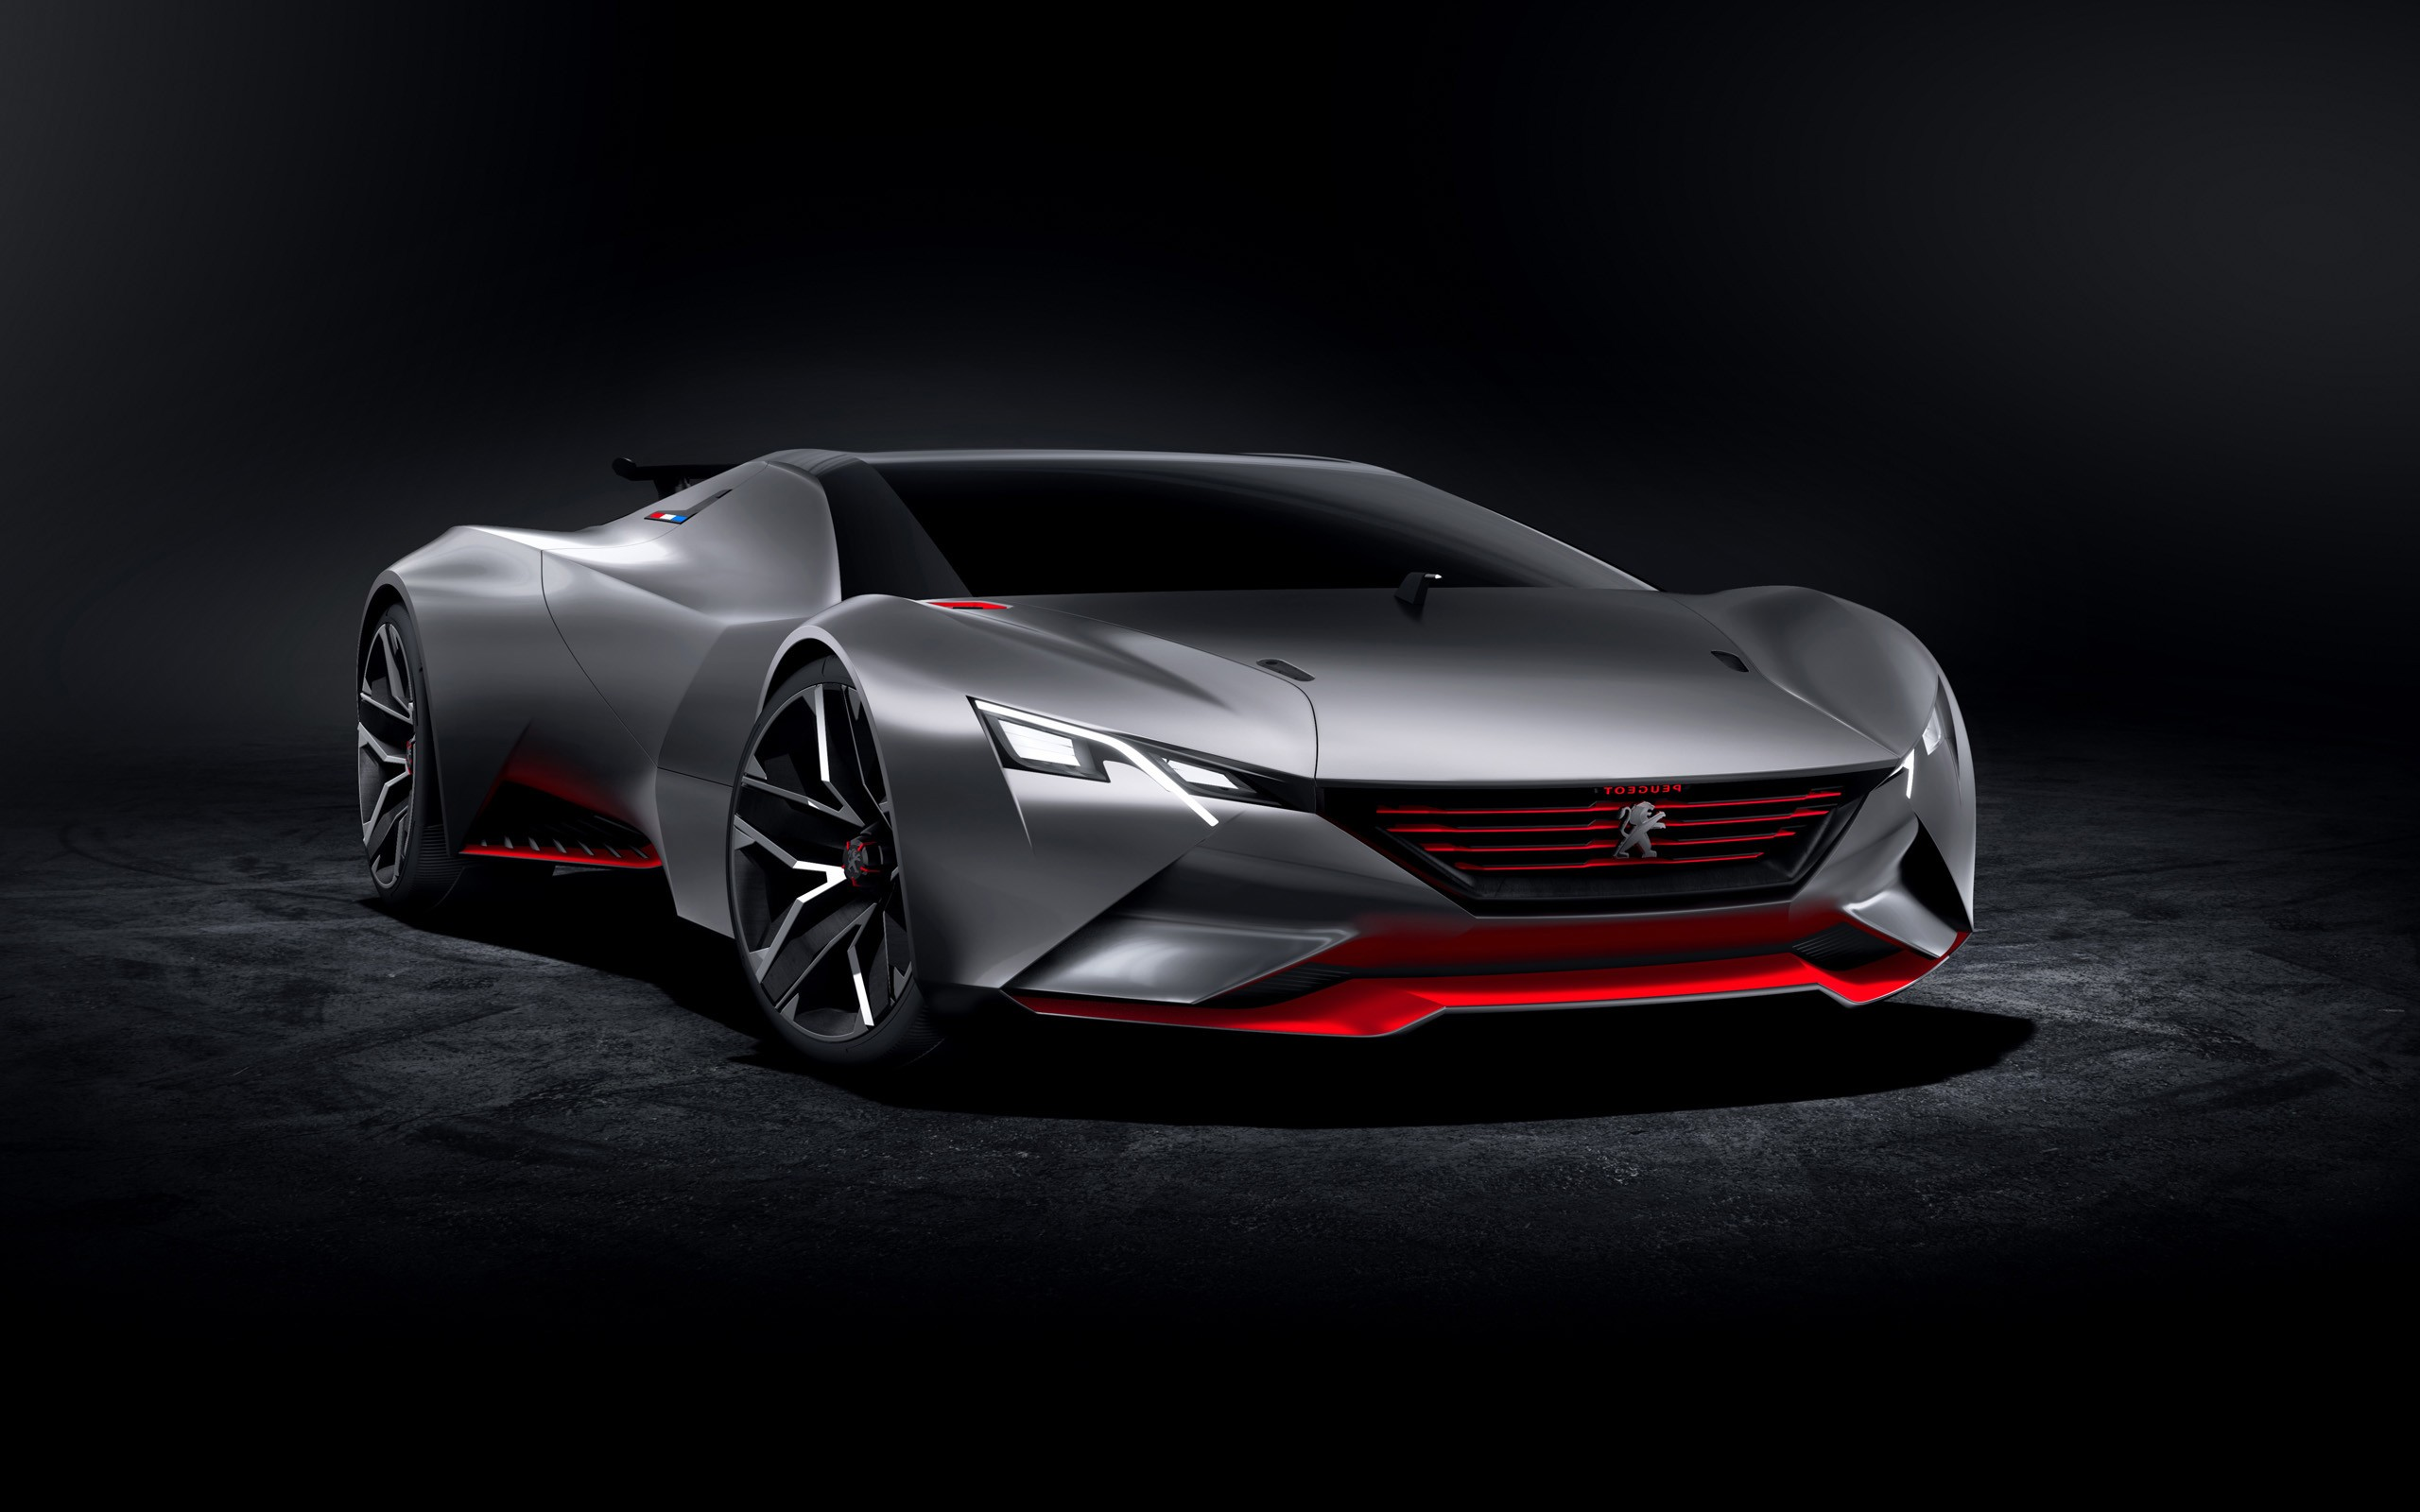 Hd Car Wallpapers For Mobile 28 Wallpapers: Peugeot Vision Gran Turismo 2, HD Cars, 4k Wallpapers